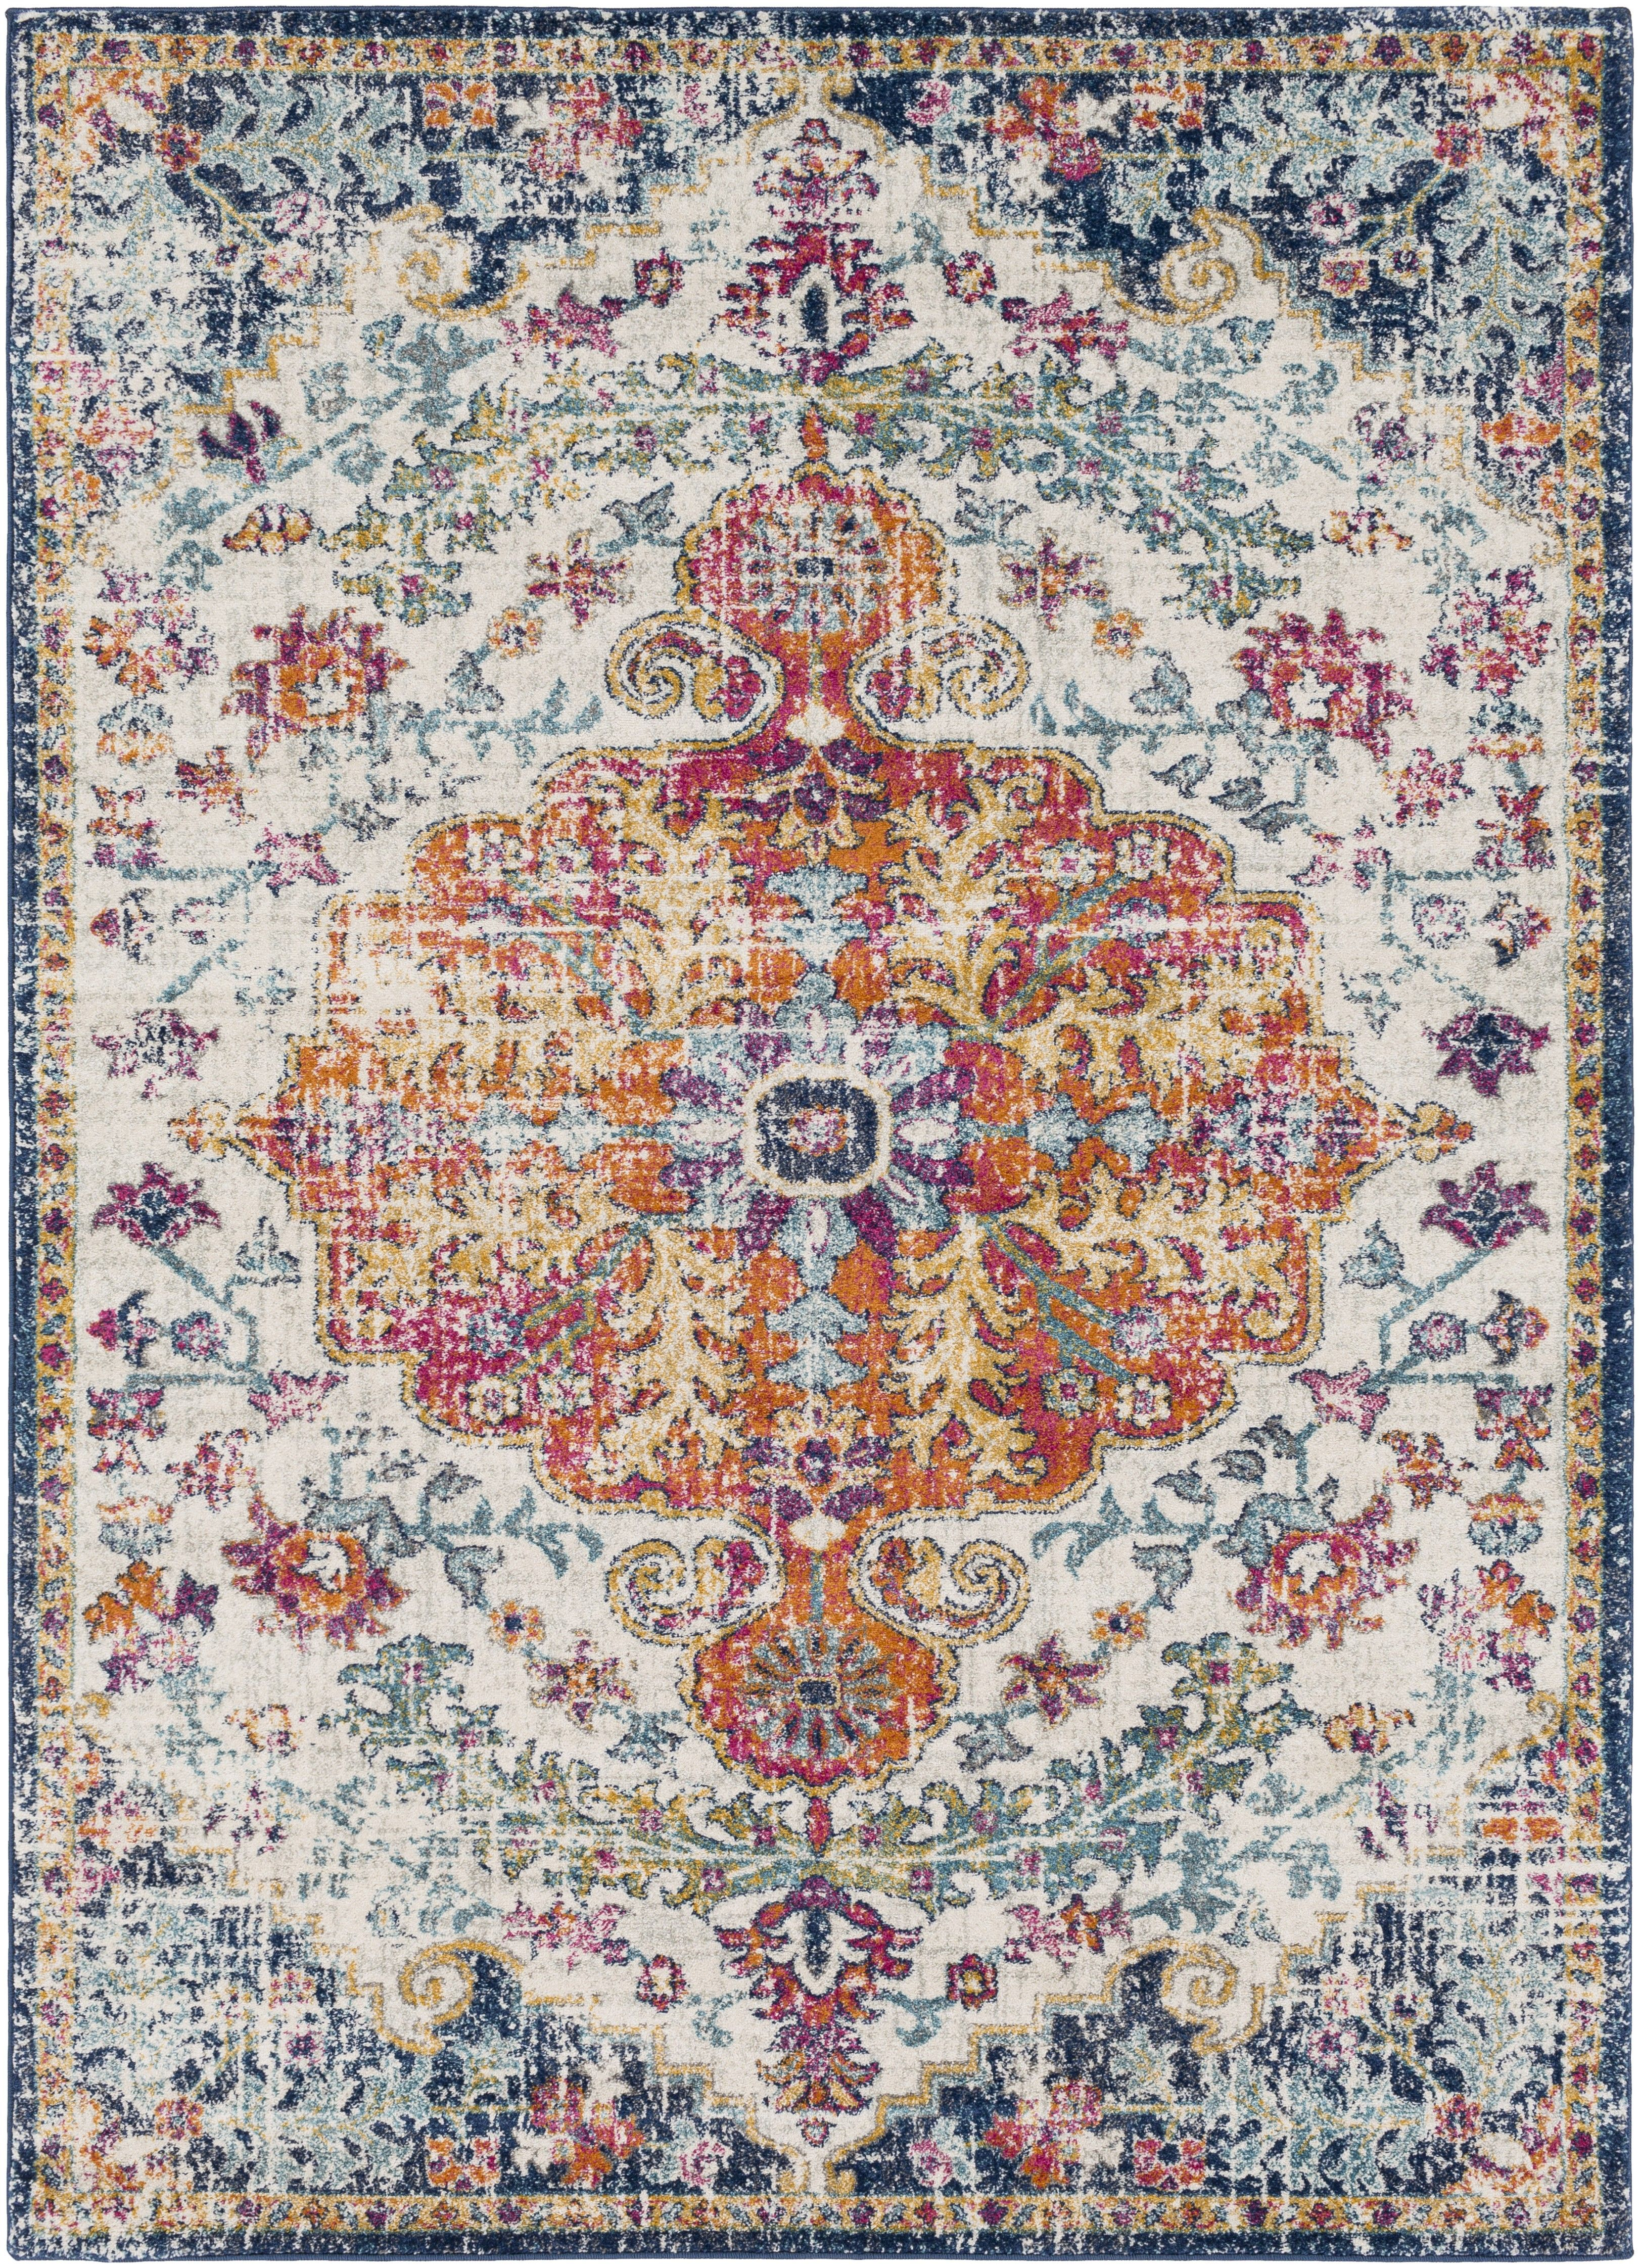 bright colored living room rugs small table and chairs divya rug kwd fenway pinterest area home decor adds character charm to any space with it s perfect balance of color a worn out look the beautiful detail will have everyone swooning